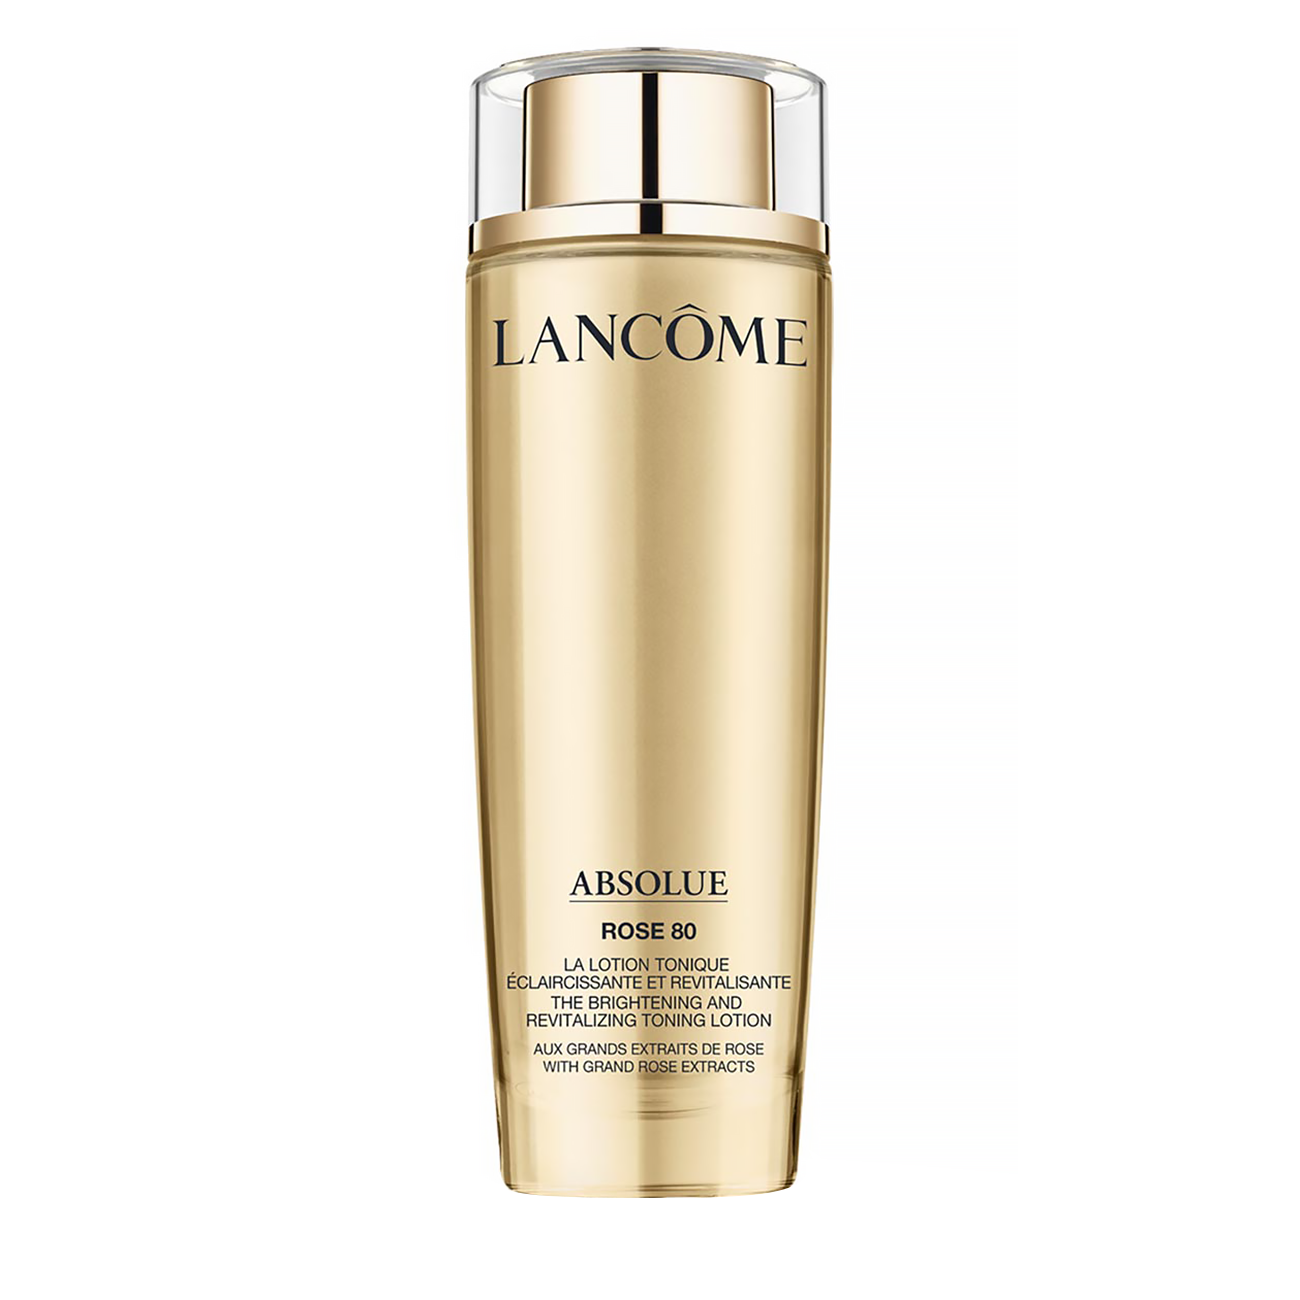 Absolue Precious Cells Revitalizing Rose Lotion 150ml Lancôme imagine 2021 bestvalue.eu